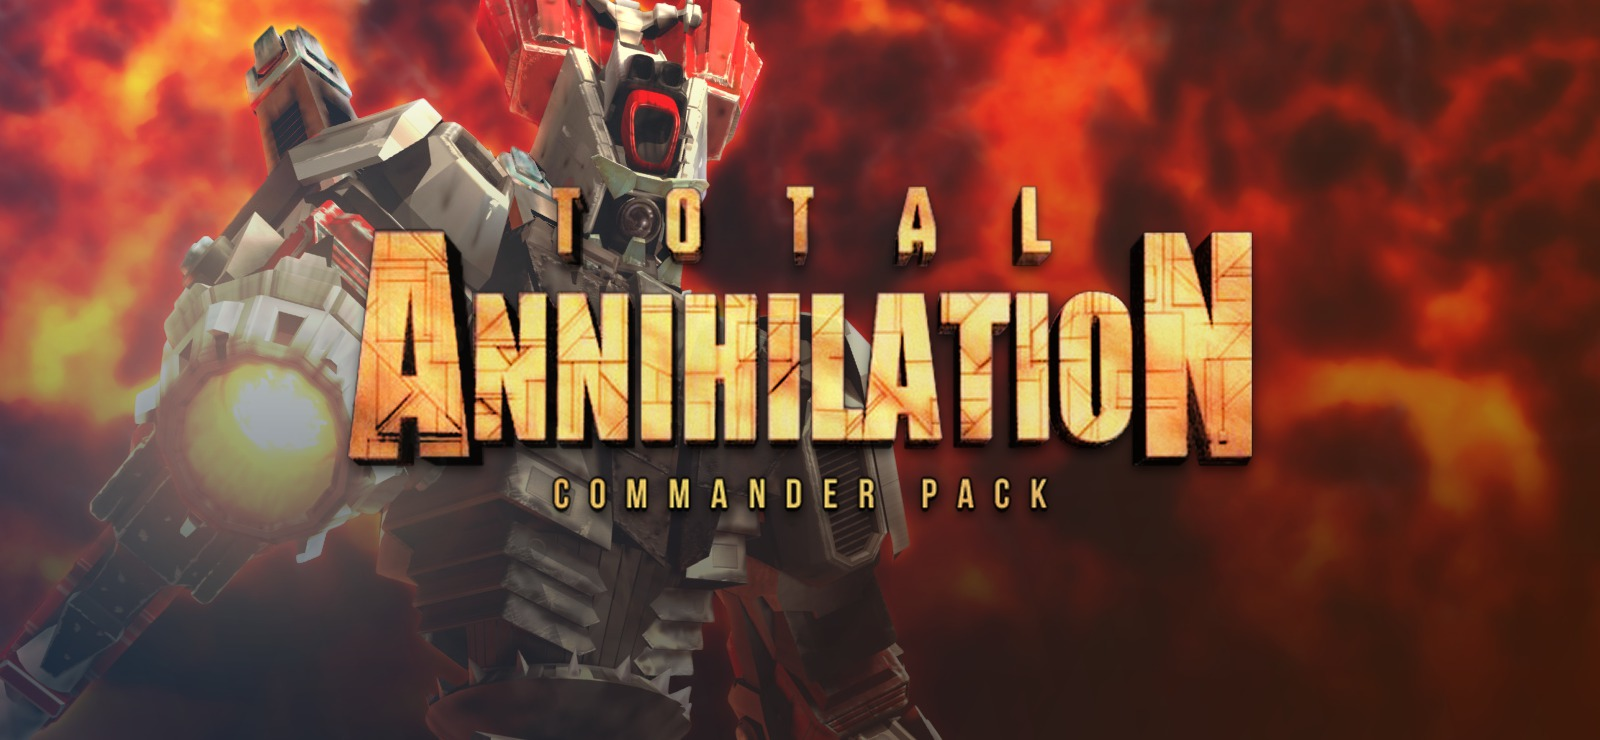 total annhilation, a war game for pc, free download